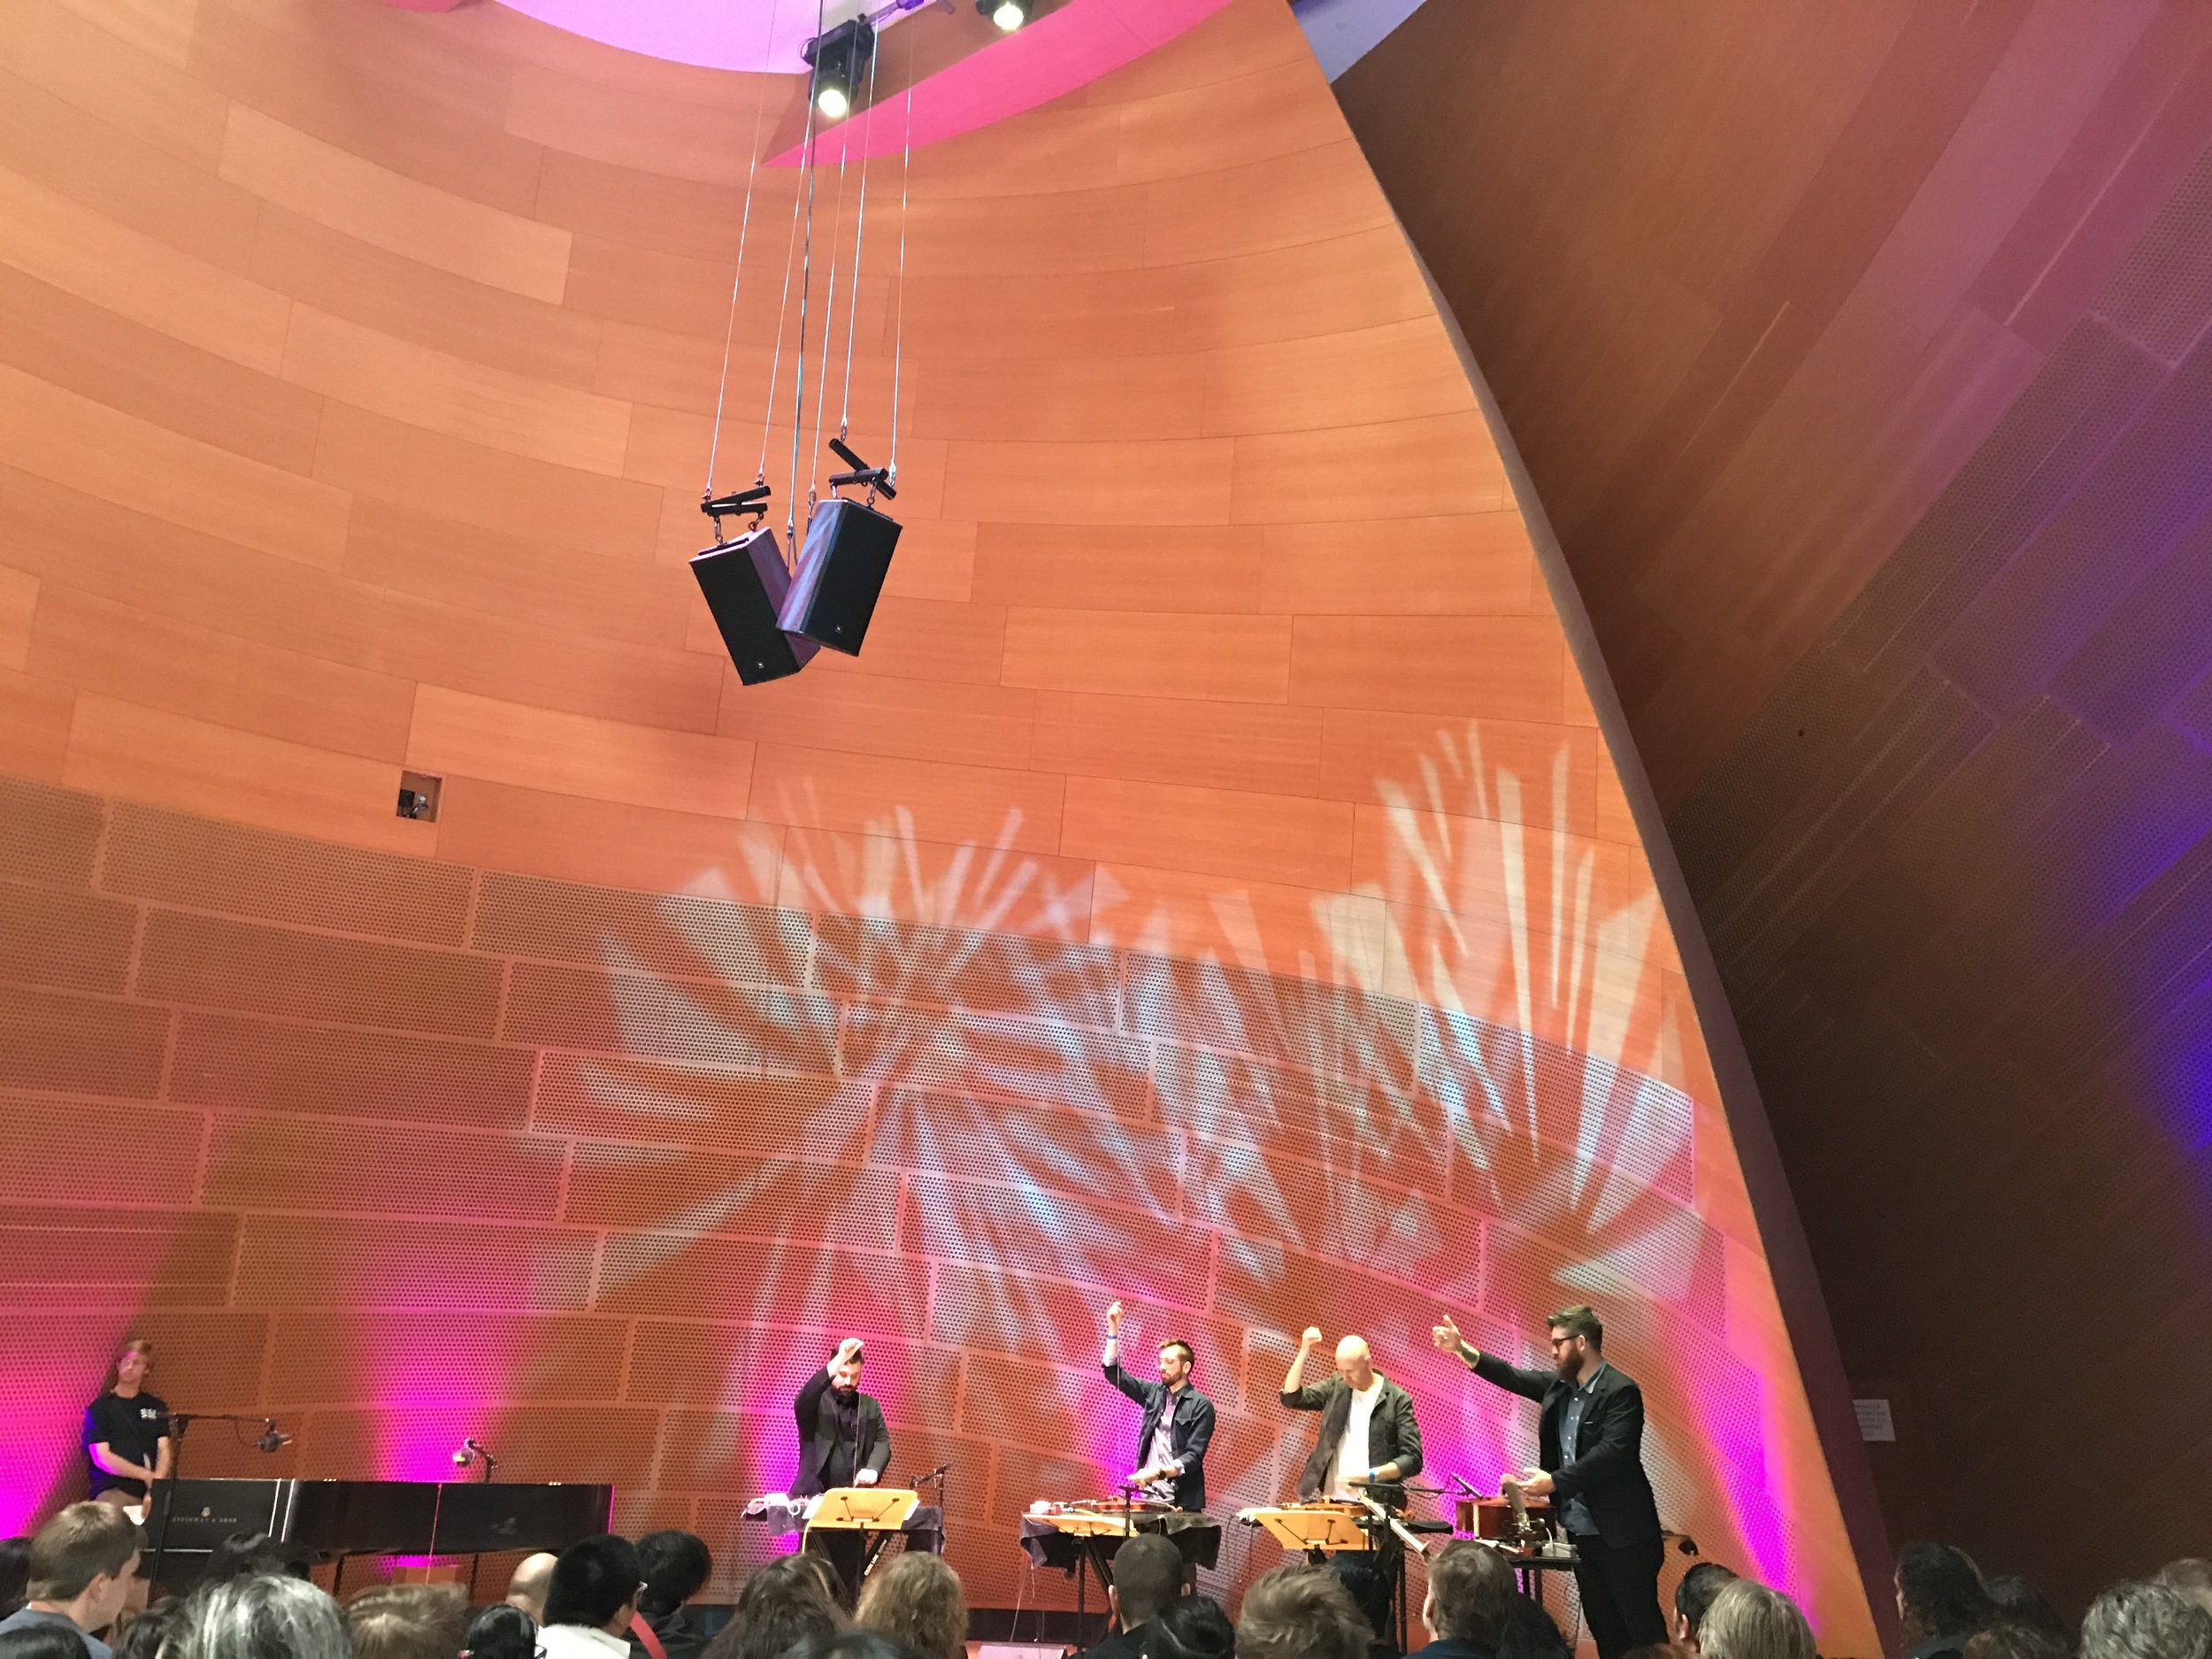 Sō Percussion in BP Hall performing Forbidden Love